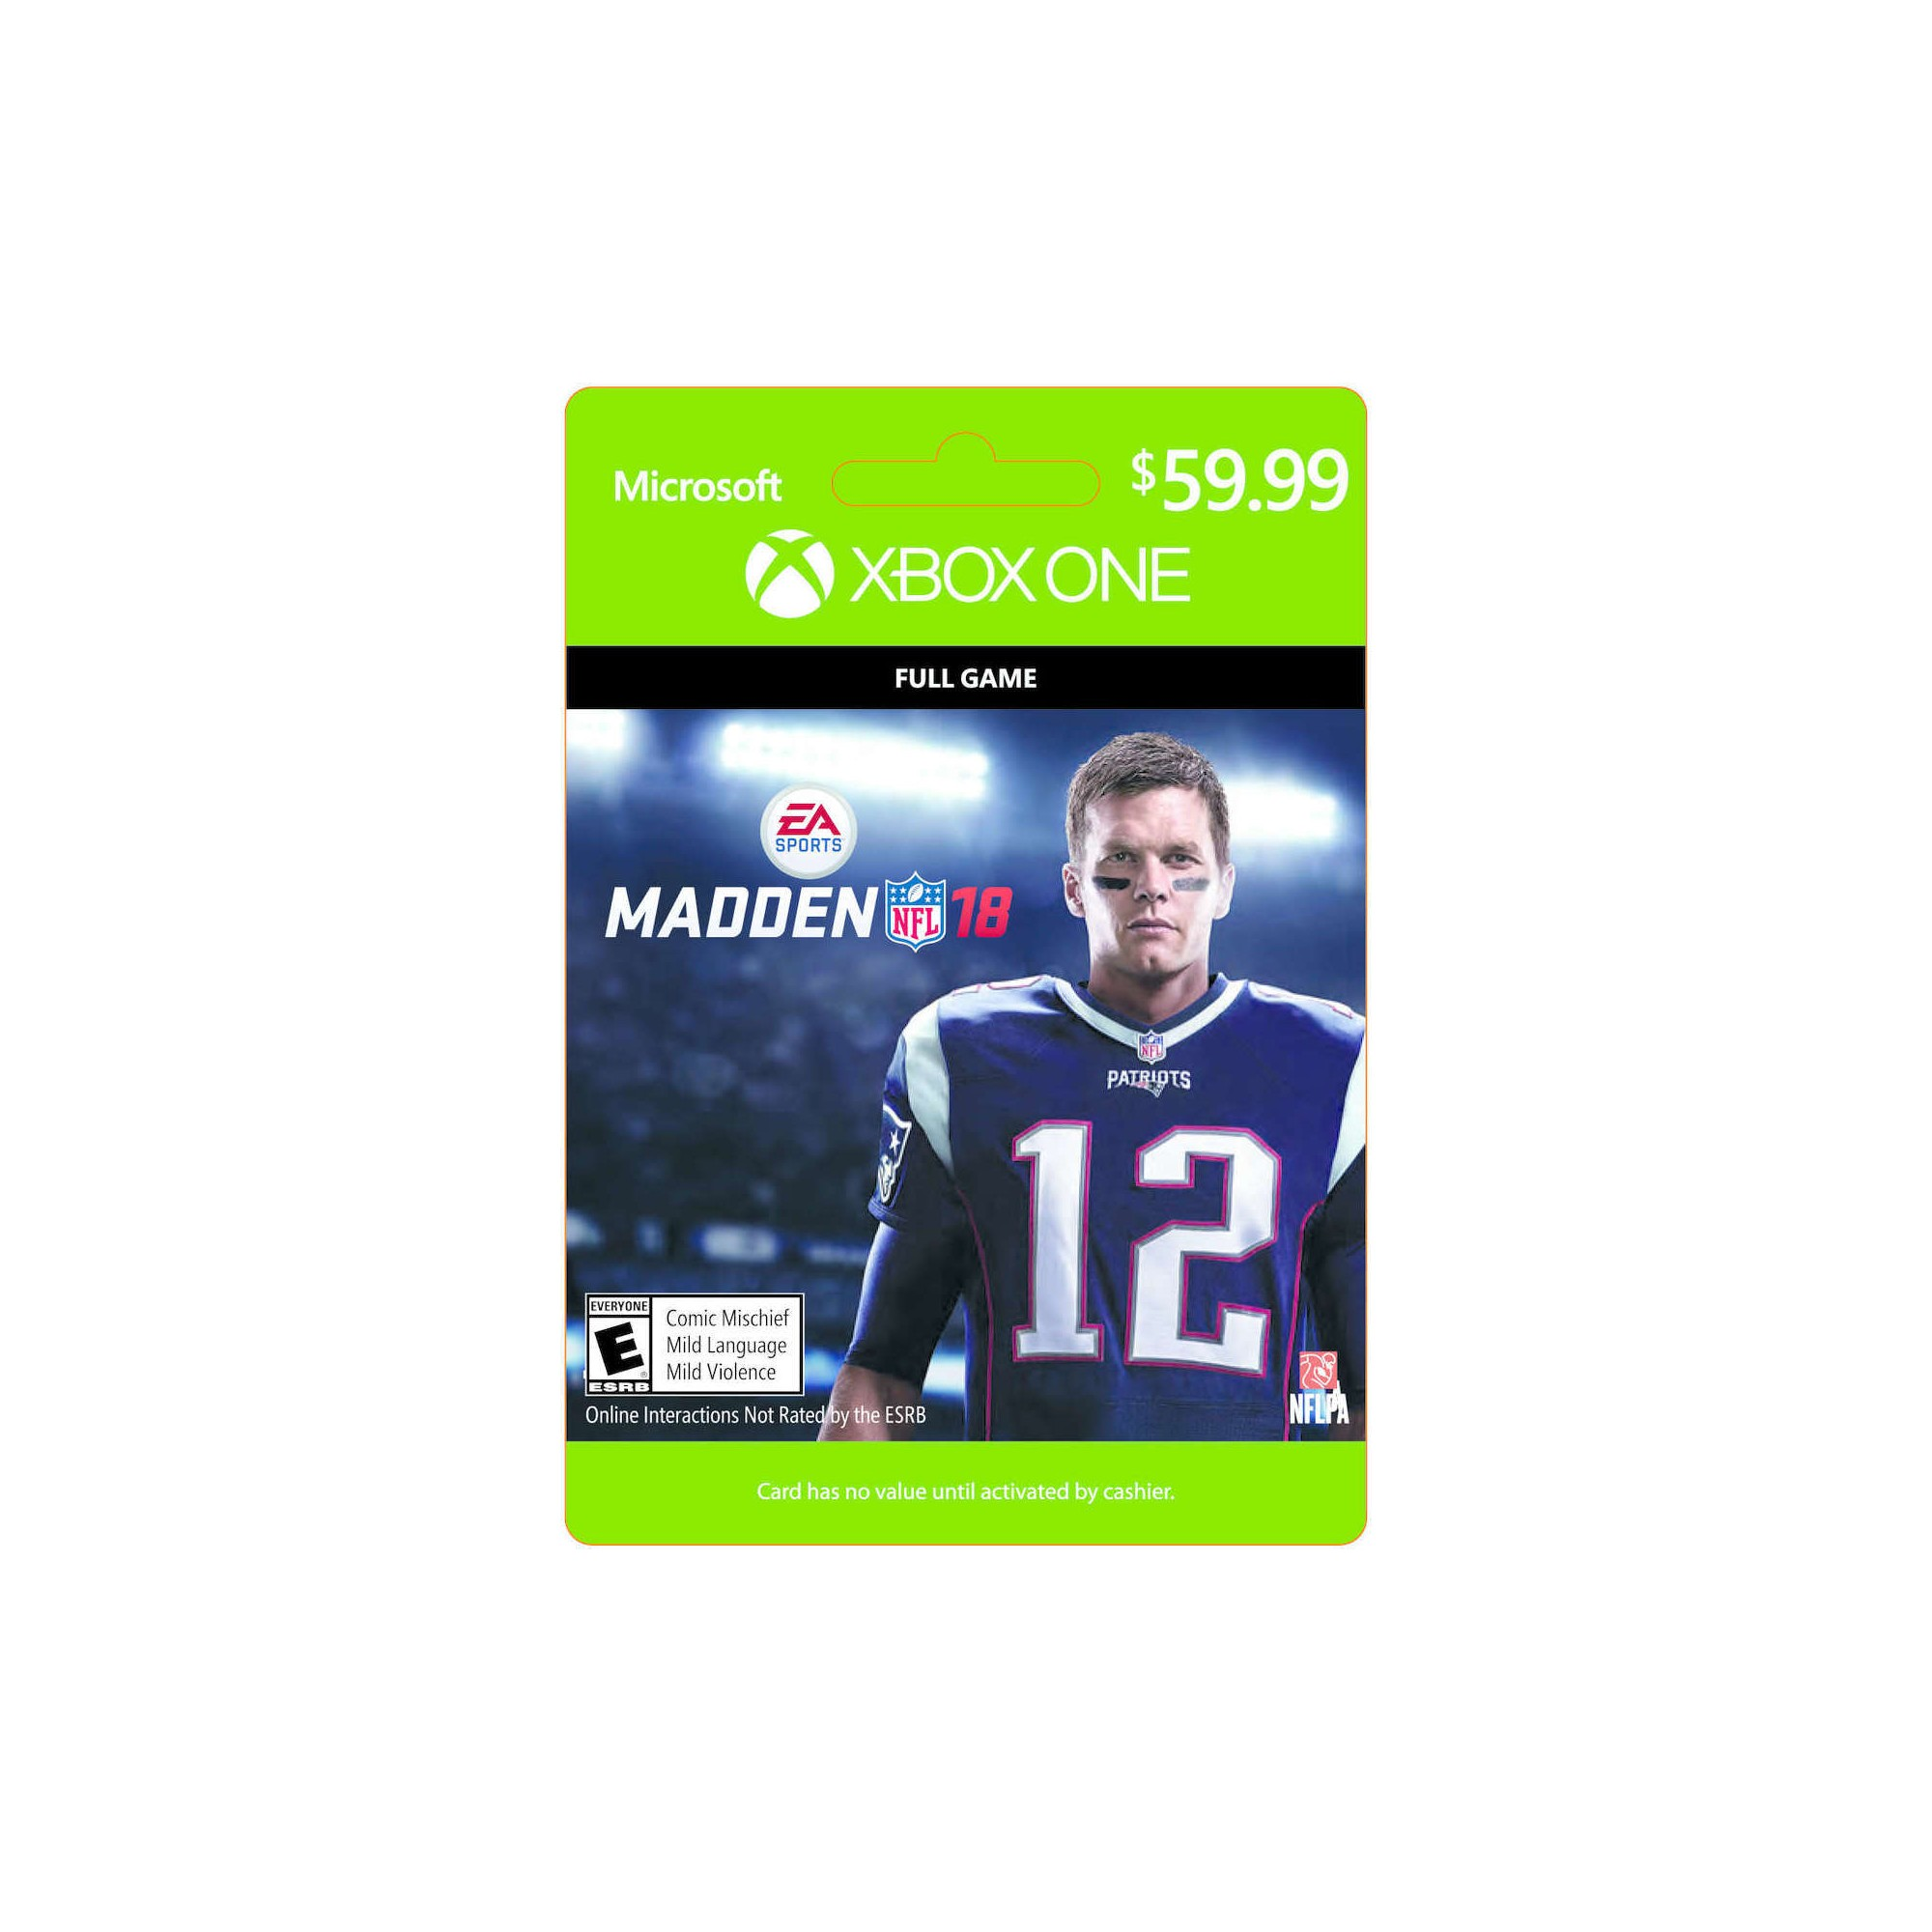 Xbox One Madden NFL 18 Full Game  59.99 - Email Delivery  3613b2a31e4